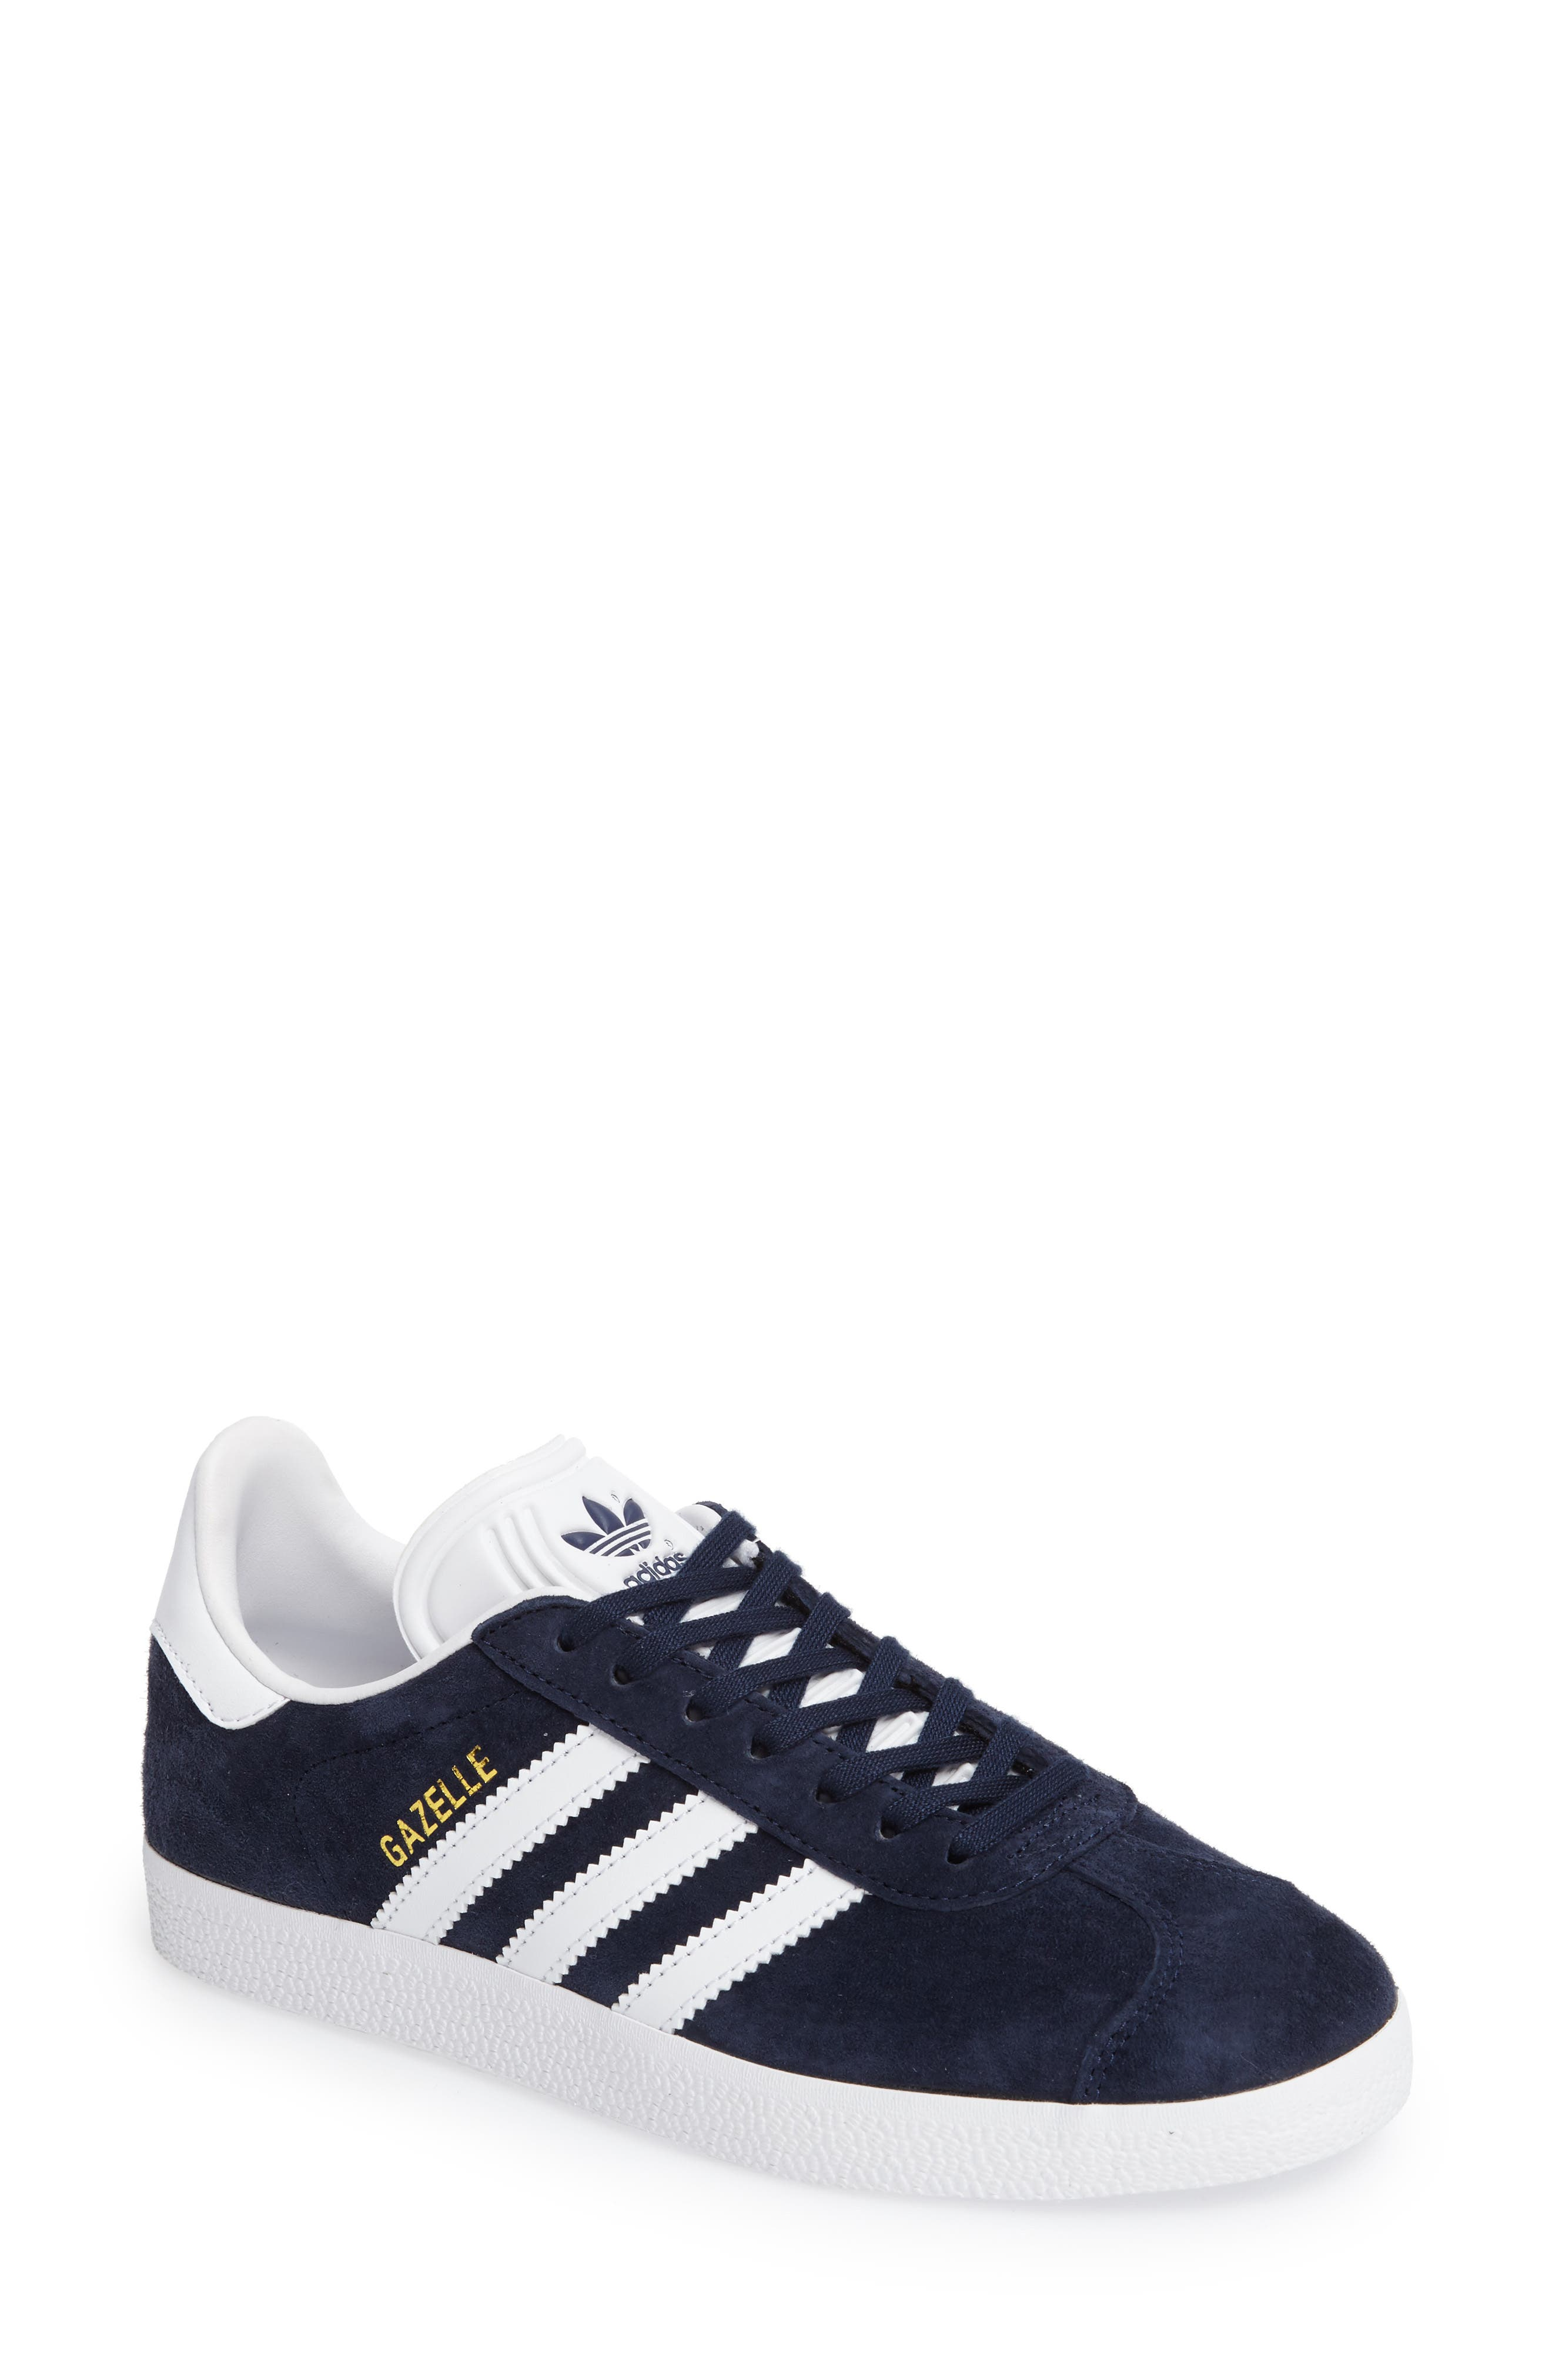 Gazelle Sneaker,                         Main,                         color, Navy/ White/ Gold Metallic